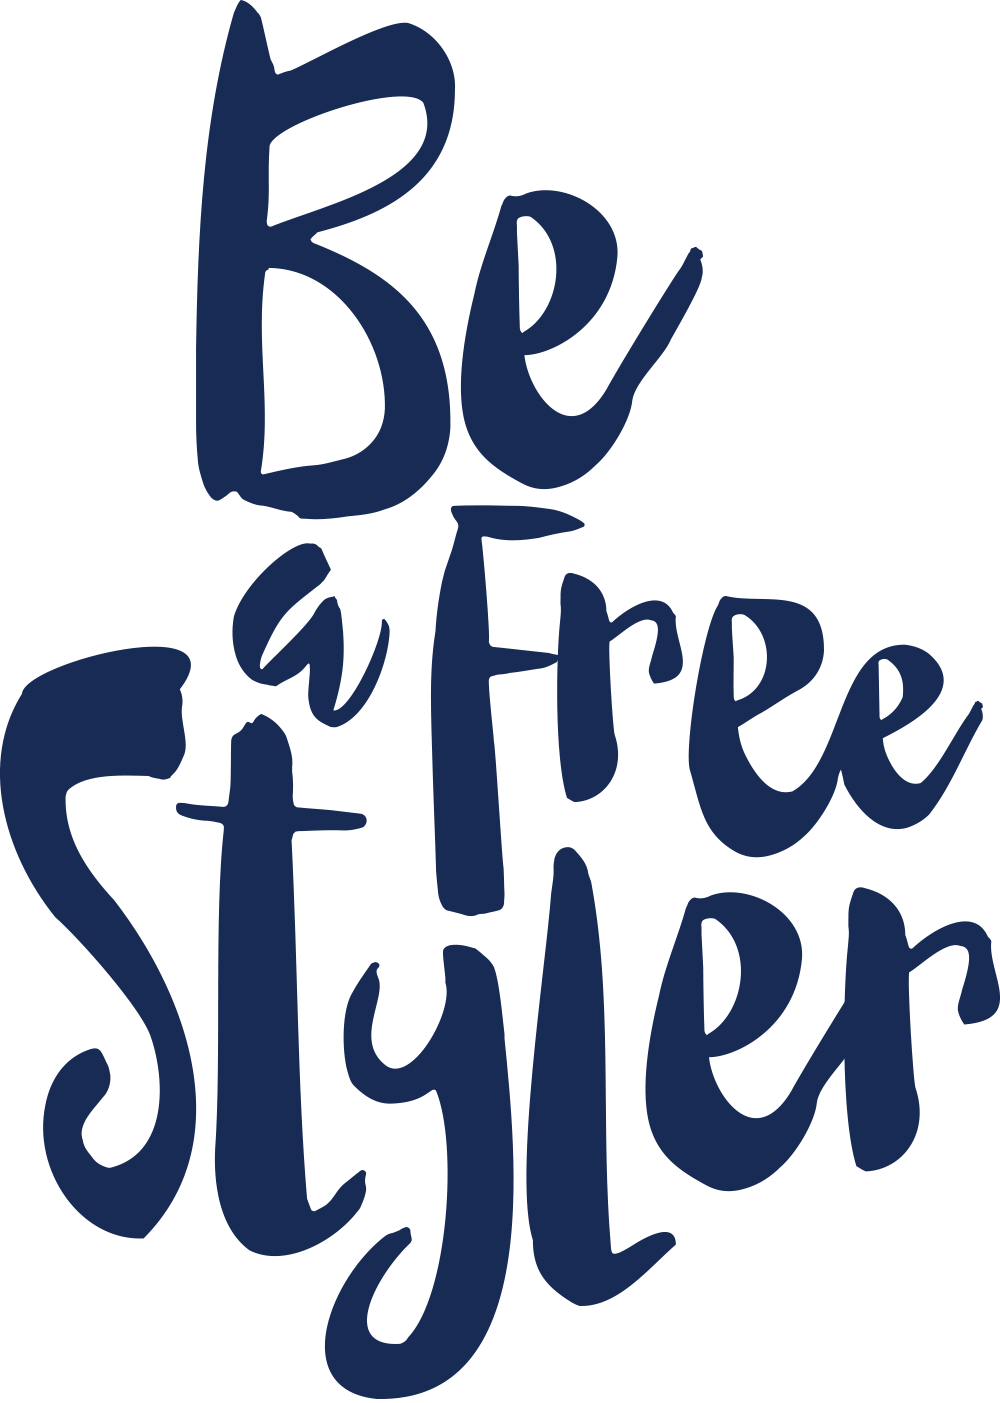 be-a-freestyler.png